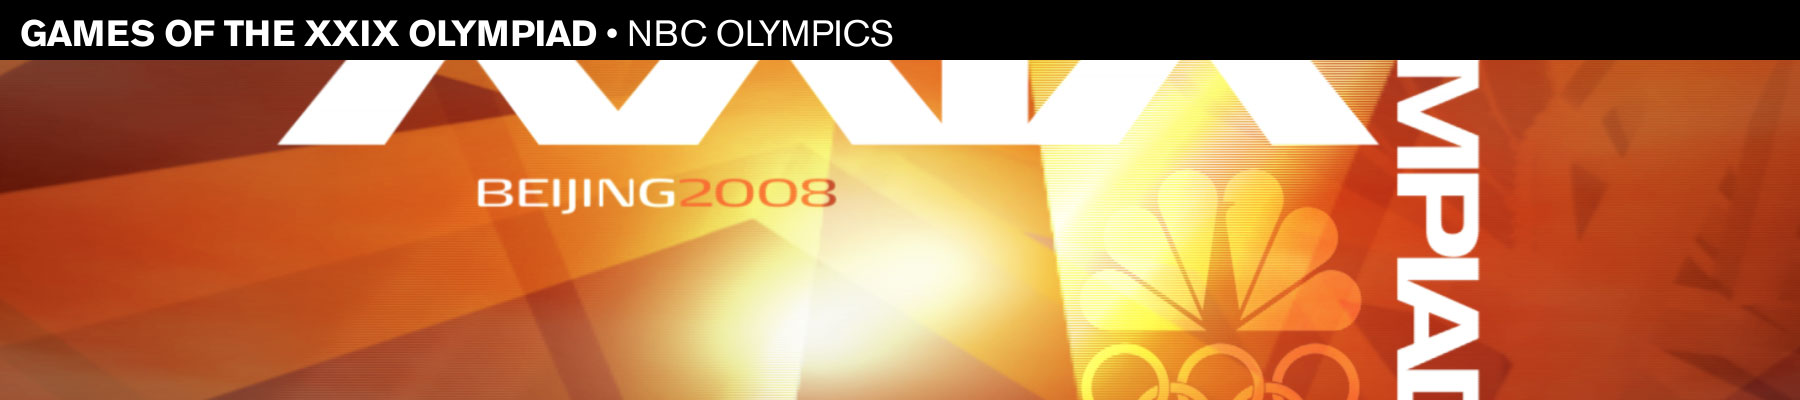 Games of the XXIX Olympiad • NBC Olympics